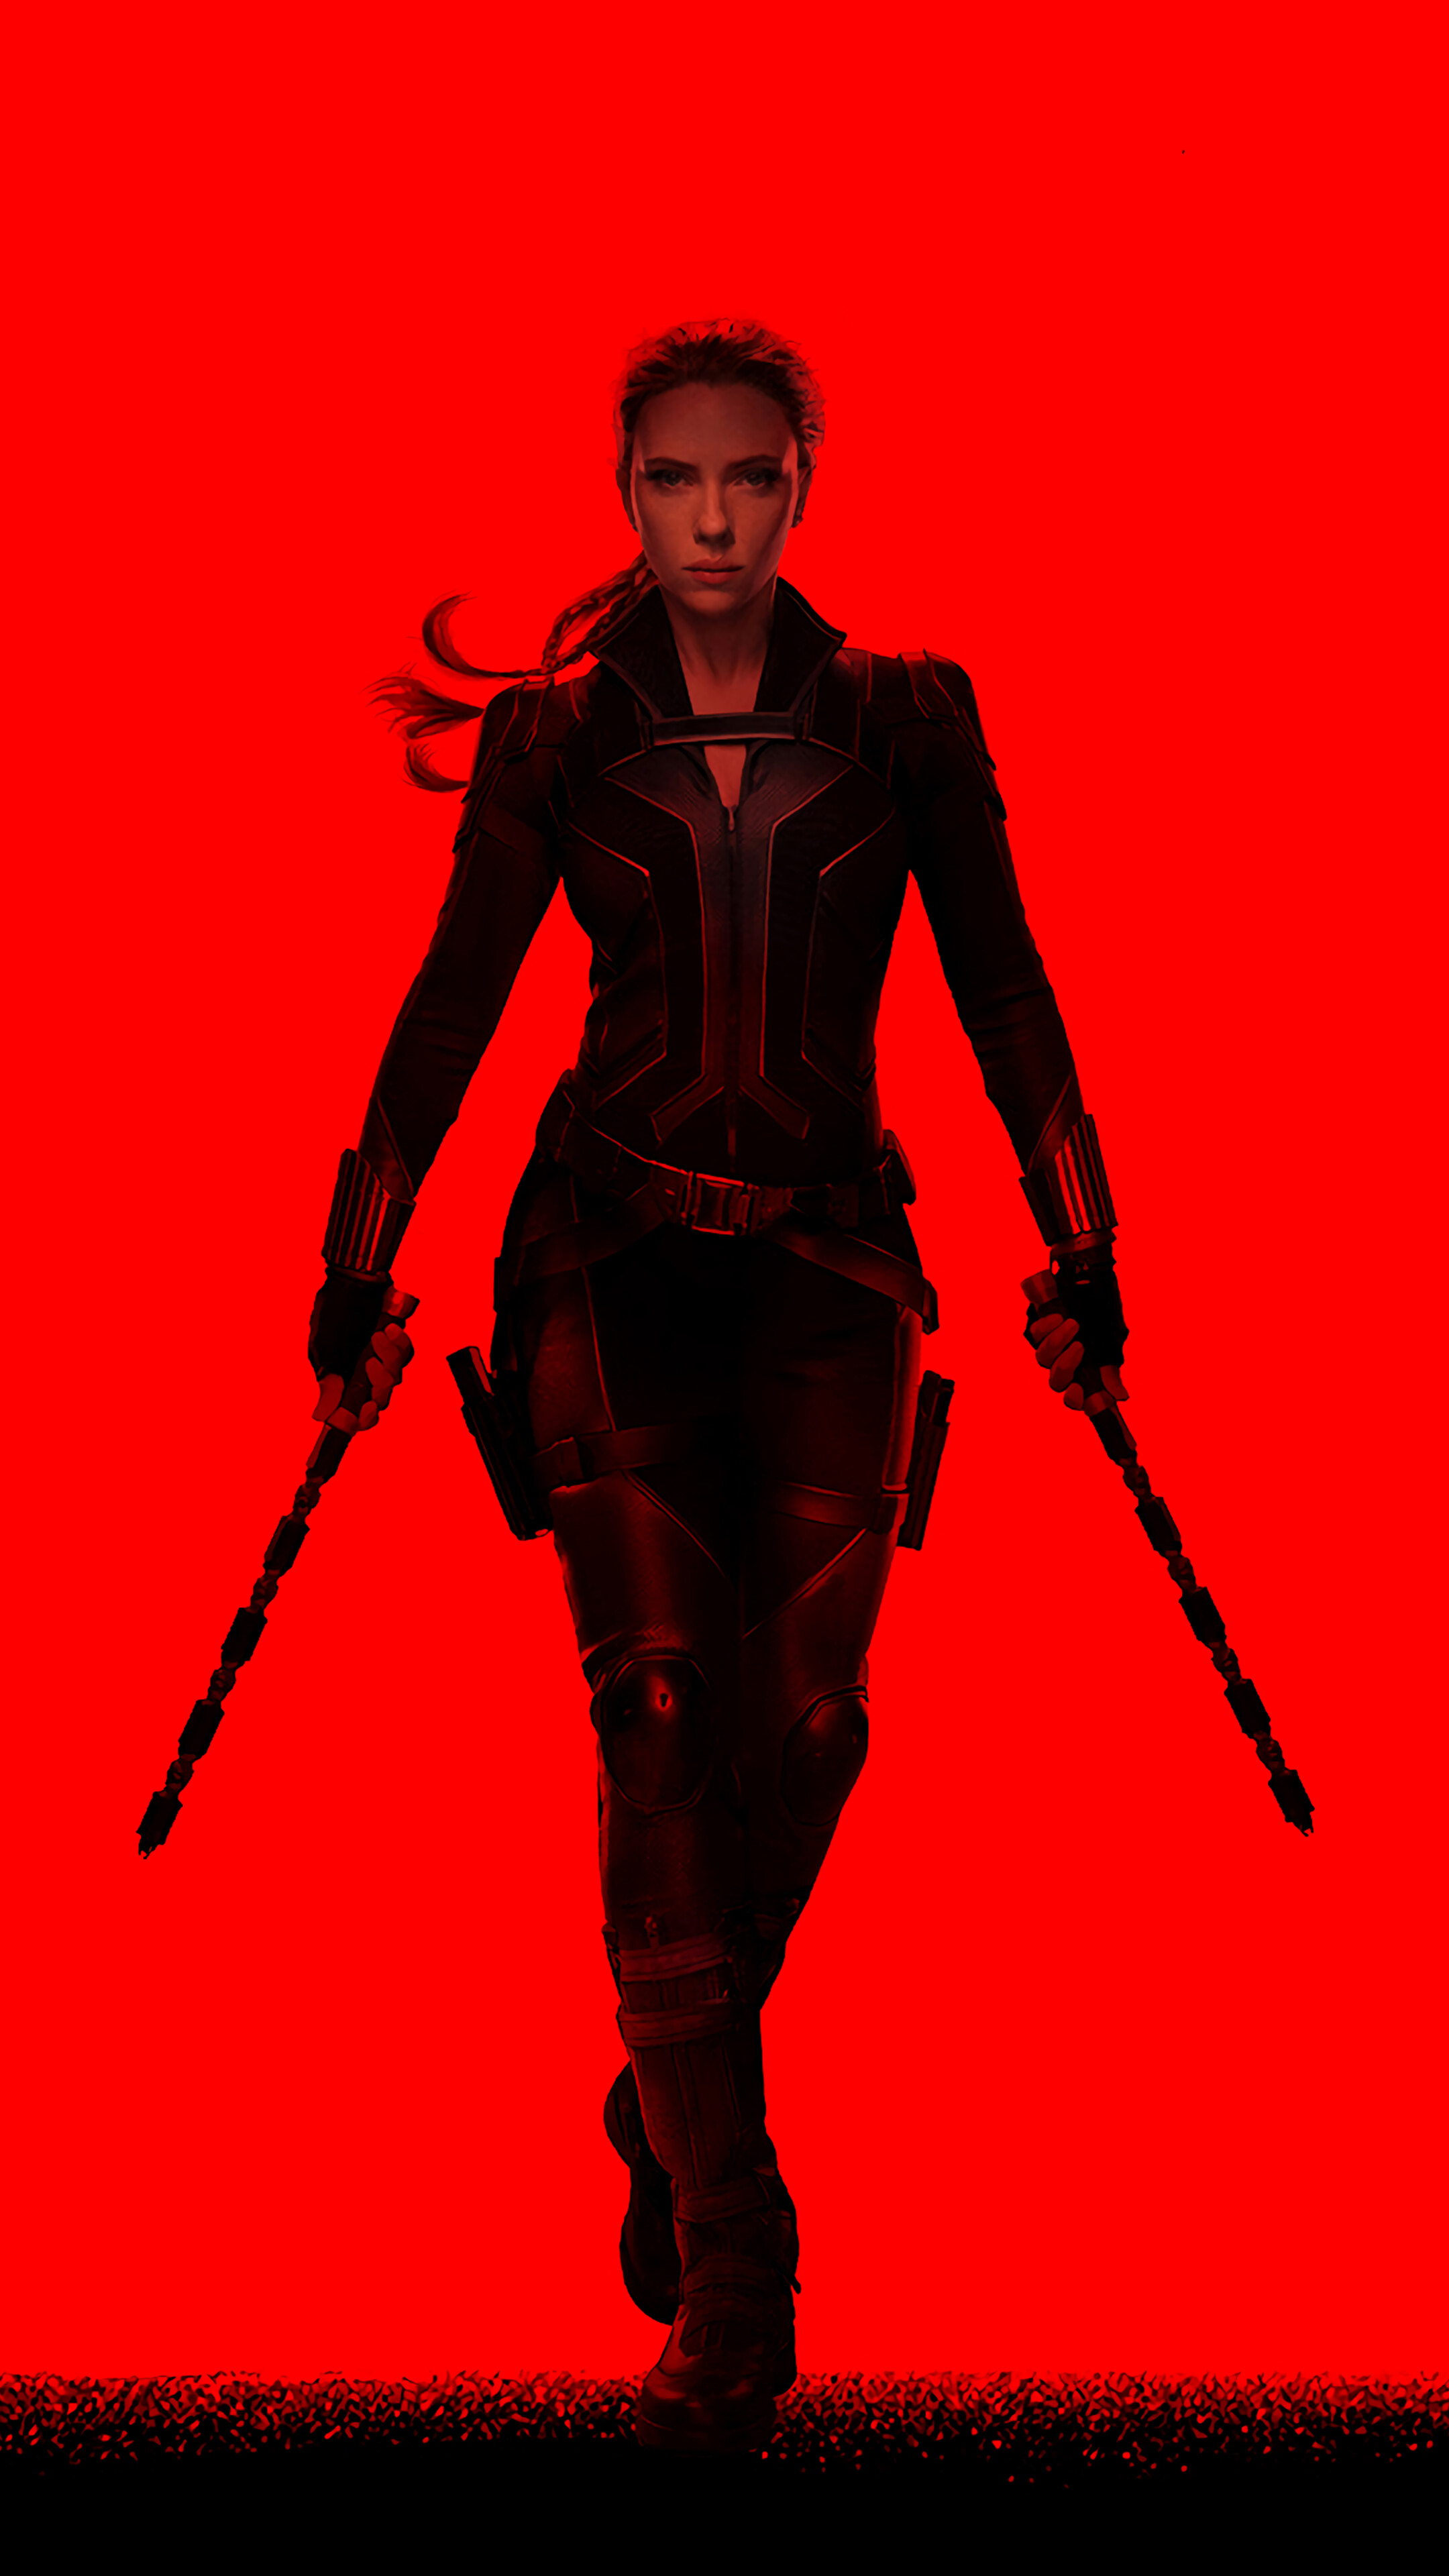 47 Black Widow 2020 Wallpapers On Wallpapersafari